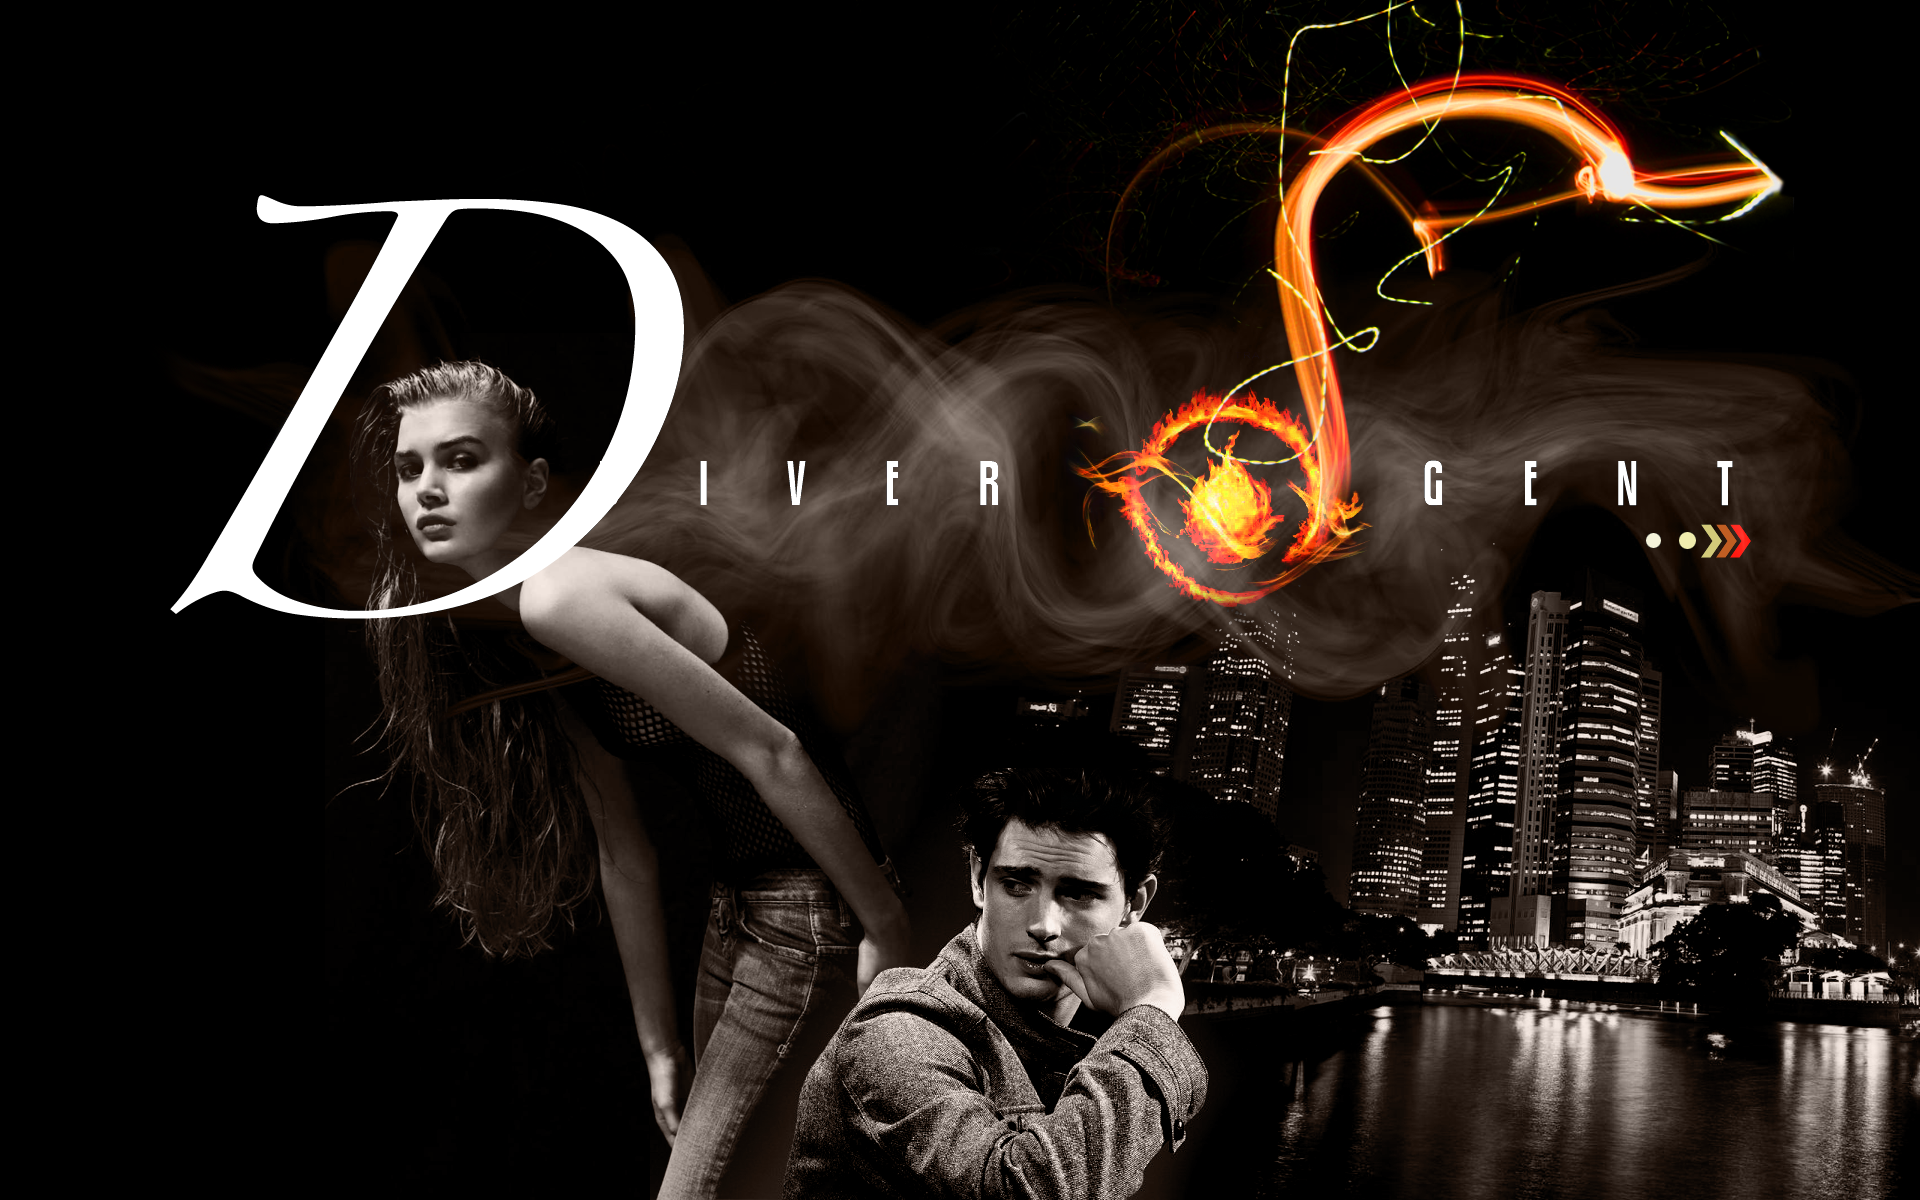 Tris and Four - Tris and Four Wallpaper (27024470) - Fanpop